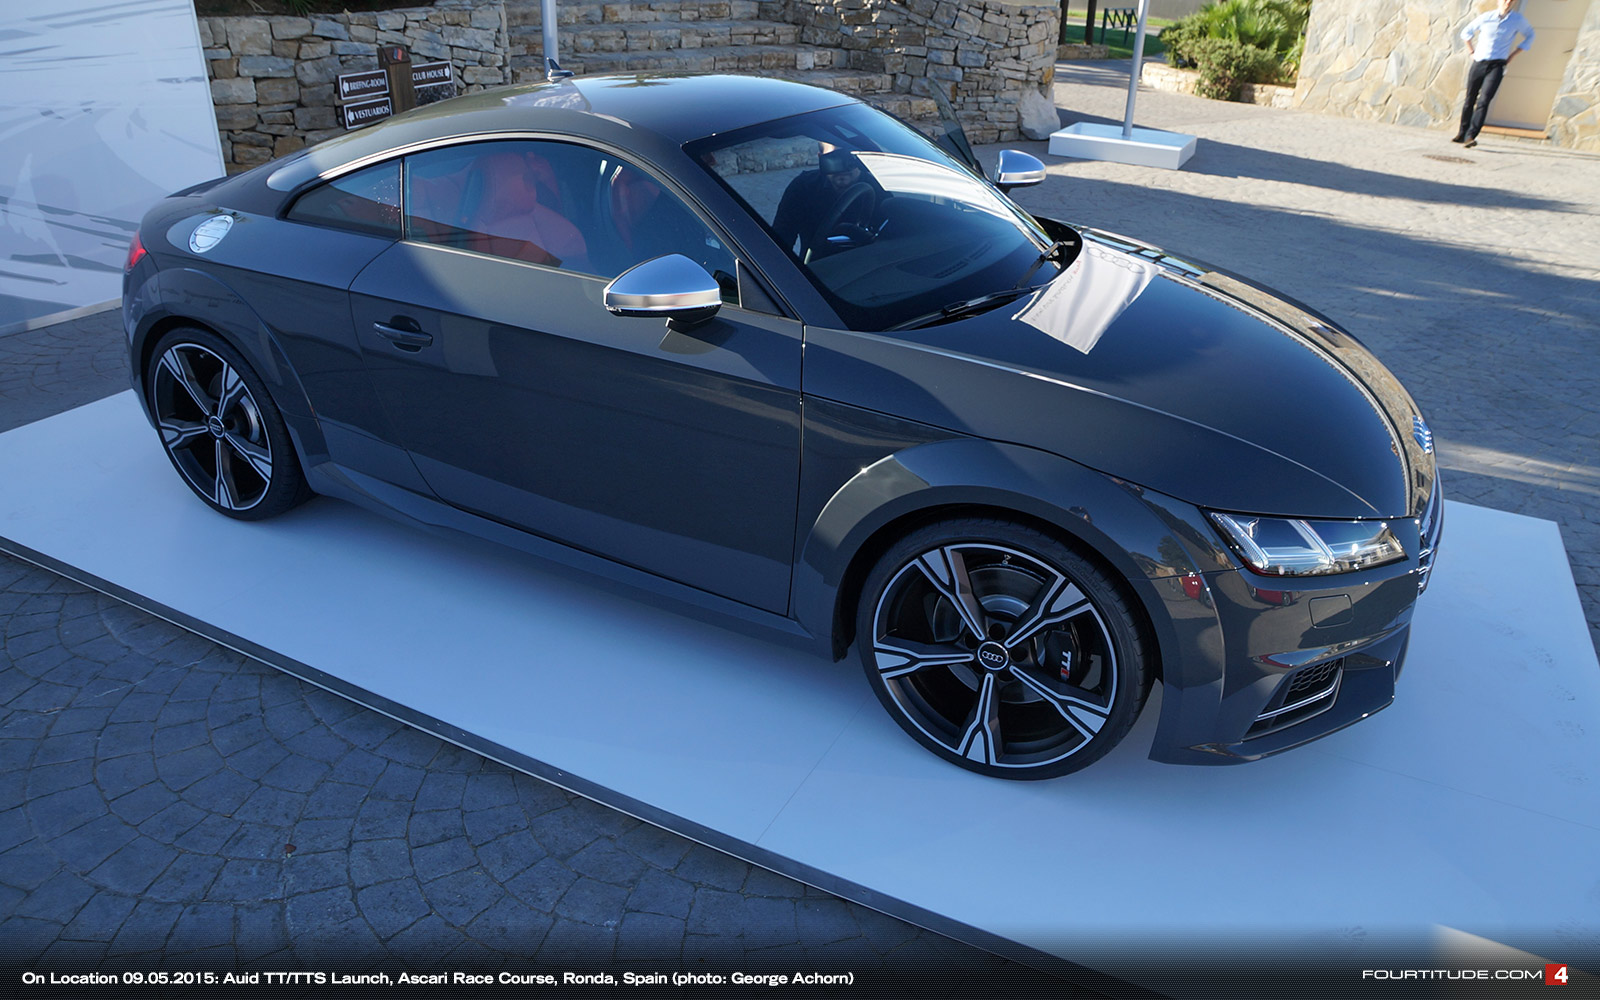 On-Location-05-09-2014-Audi-TTS-Launch-Ascari-Nano-Grey-549